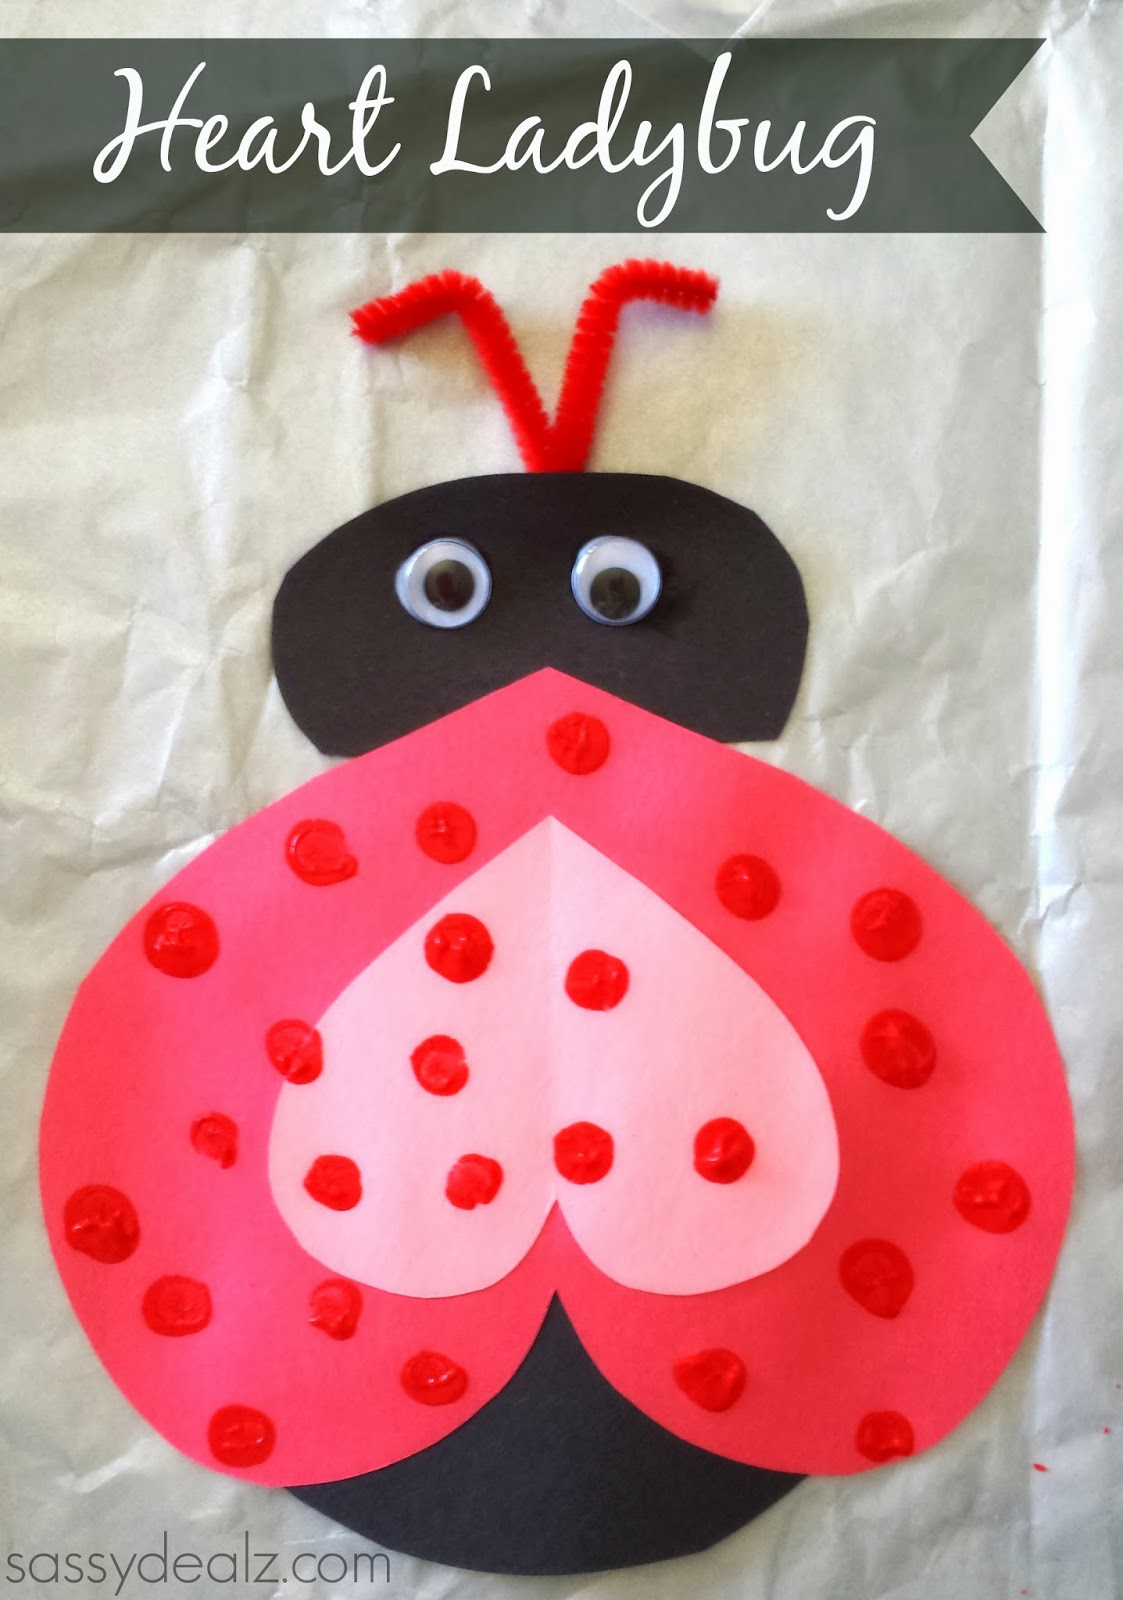 Heart ladybug valentines day craft for kids crafty morning for Valentines crafts for kindergarten